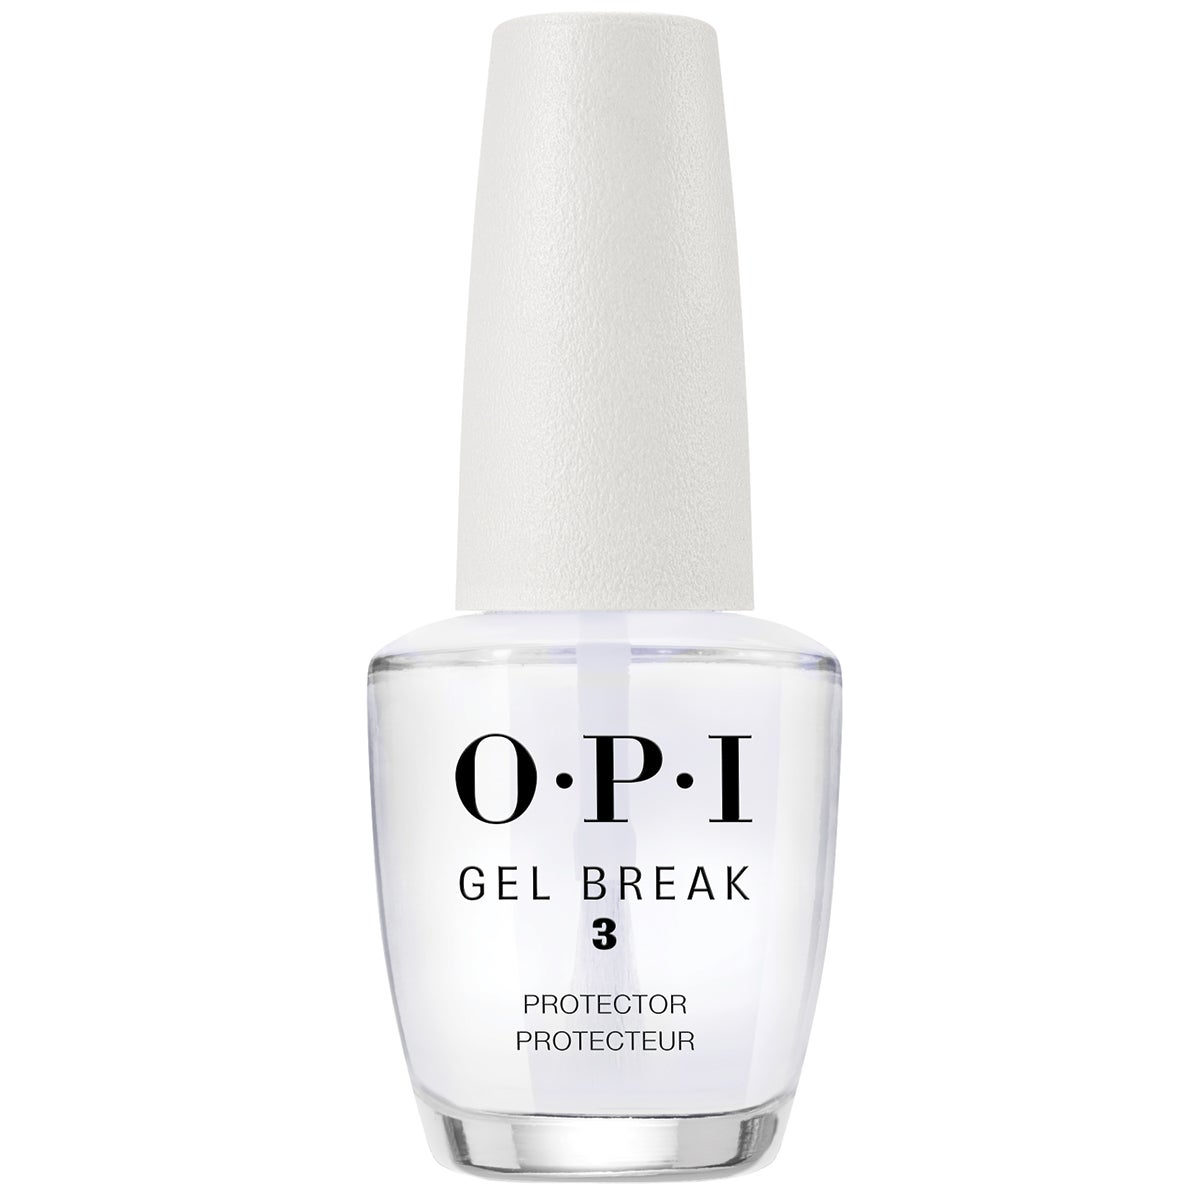 Gel Break Protector 15 ml OPI Nagelstärkare